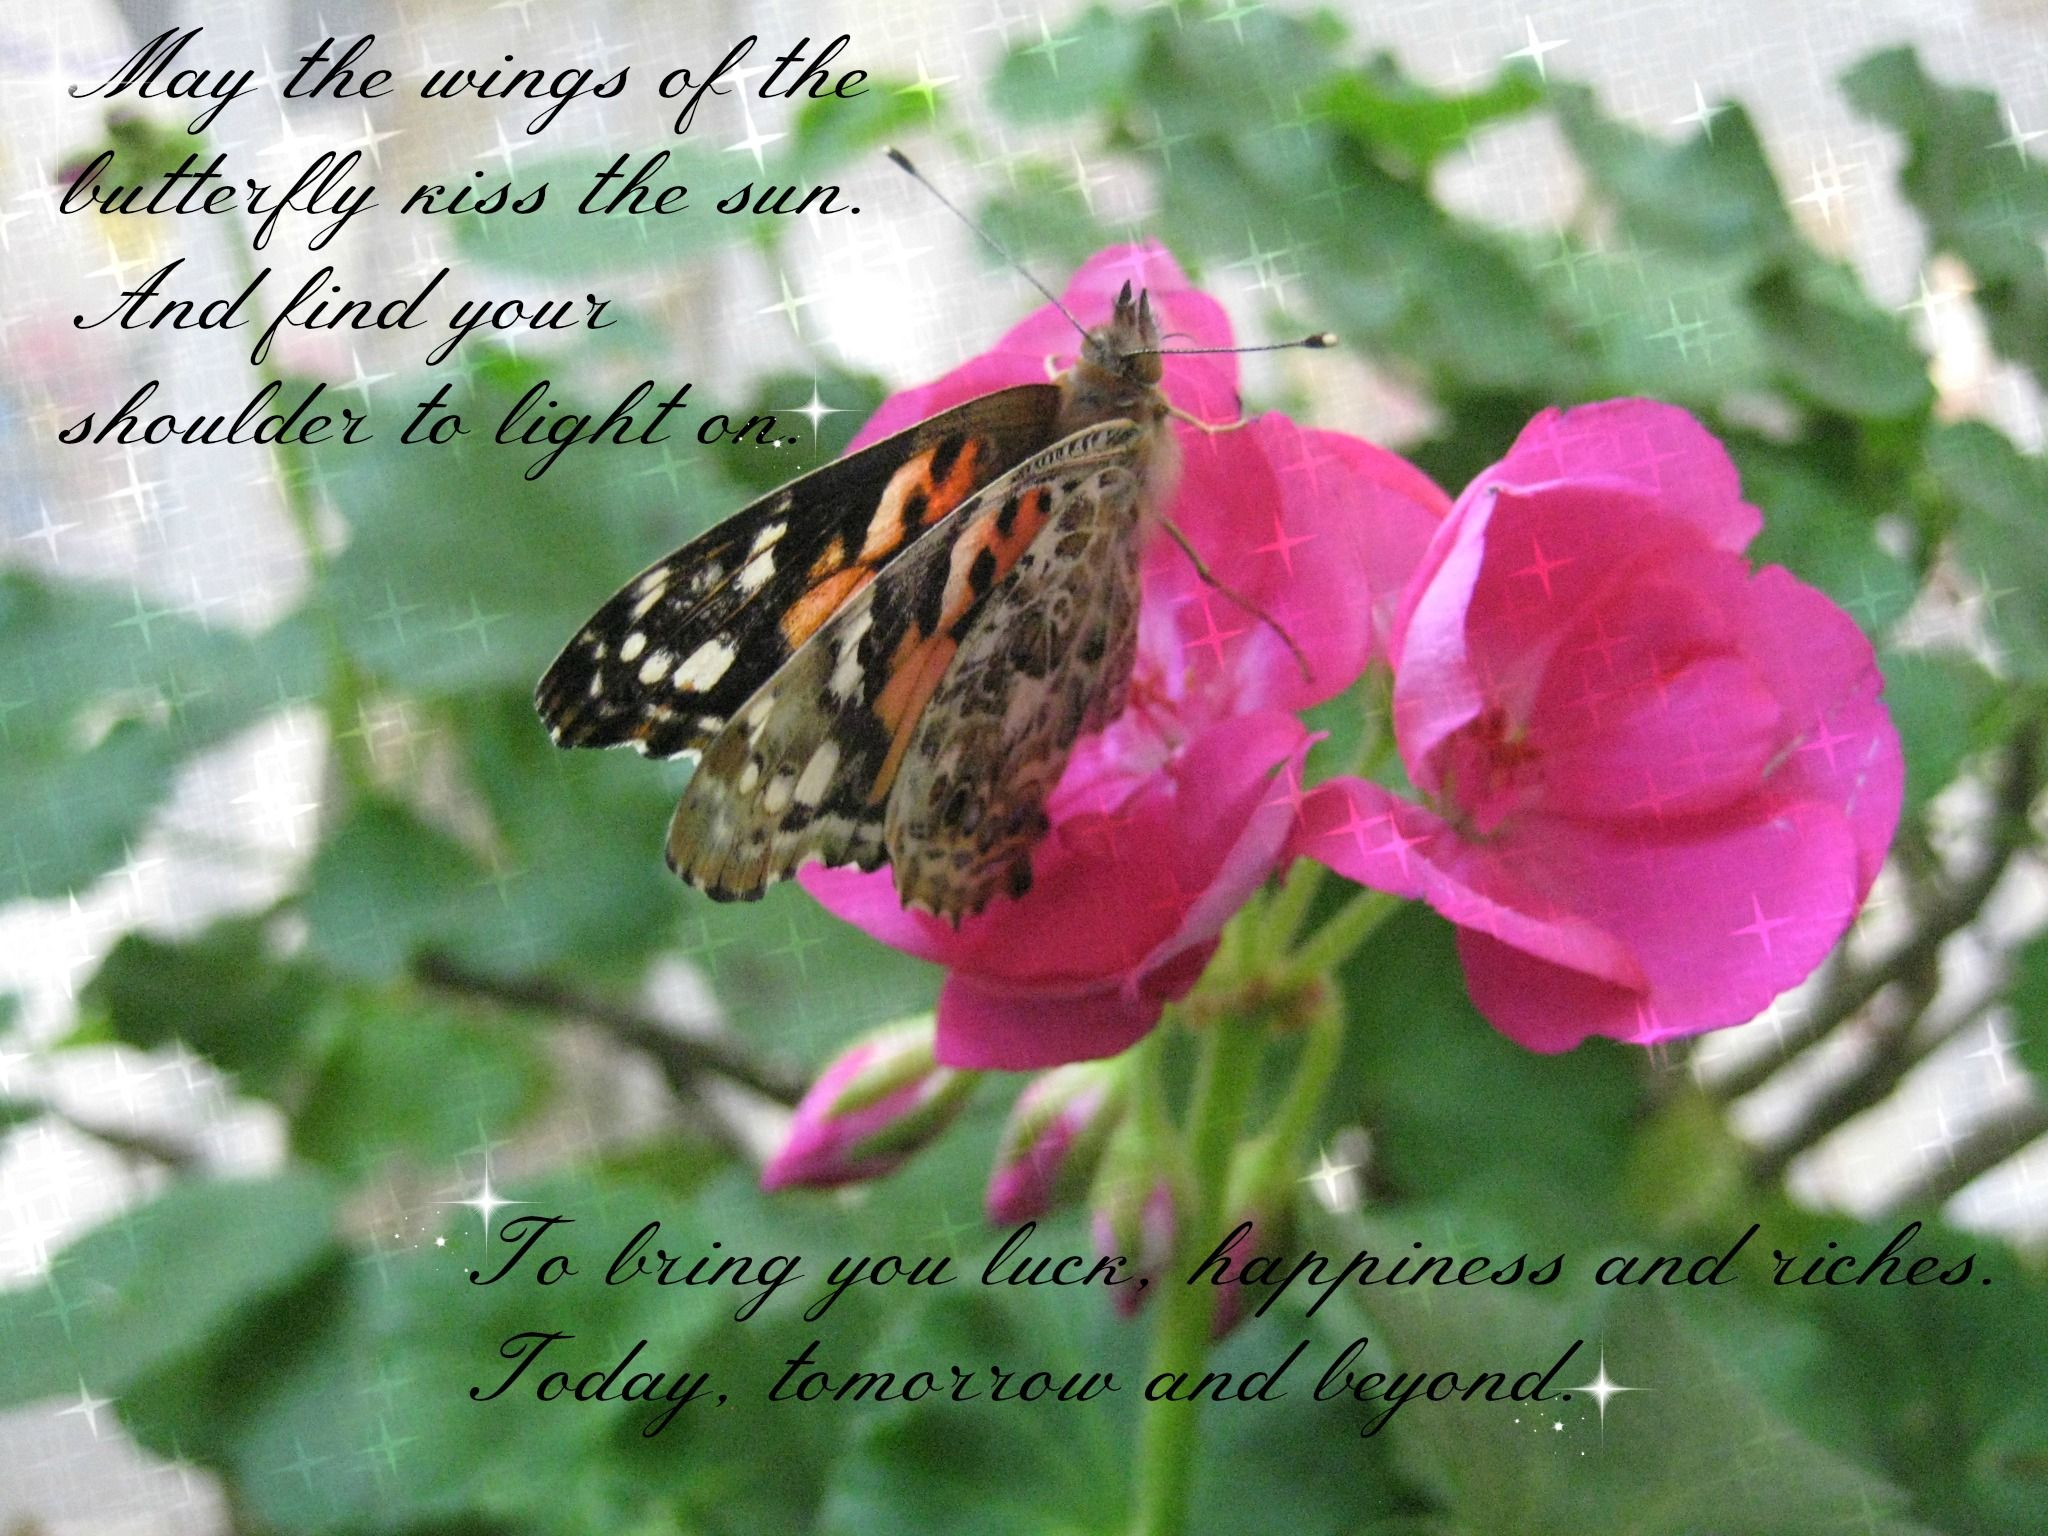 Butterfly Mom May the wings of the butterfly kiss the